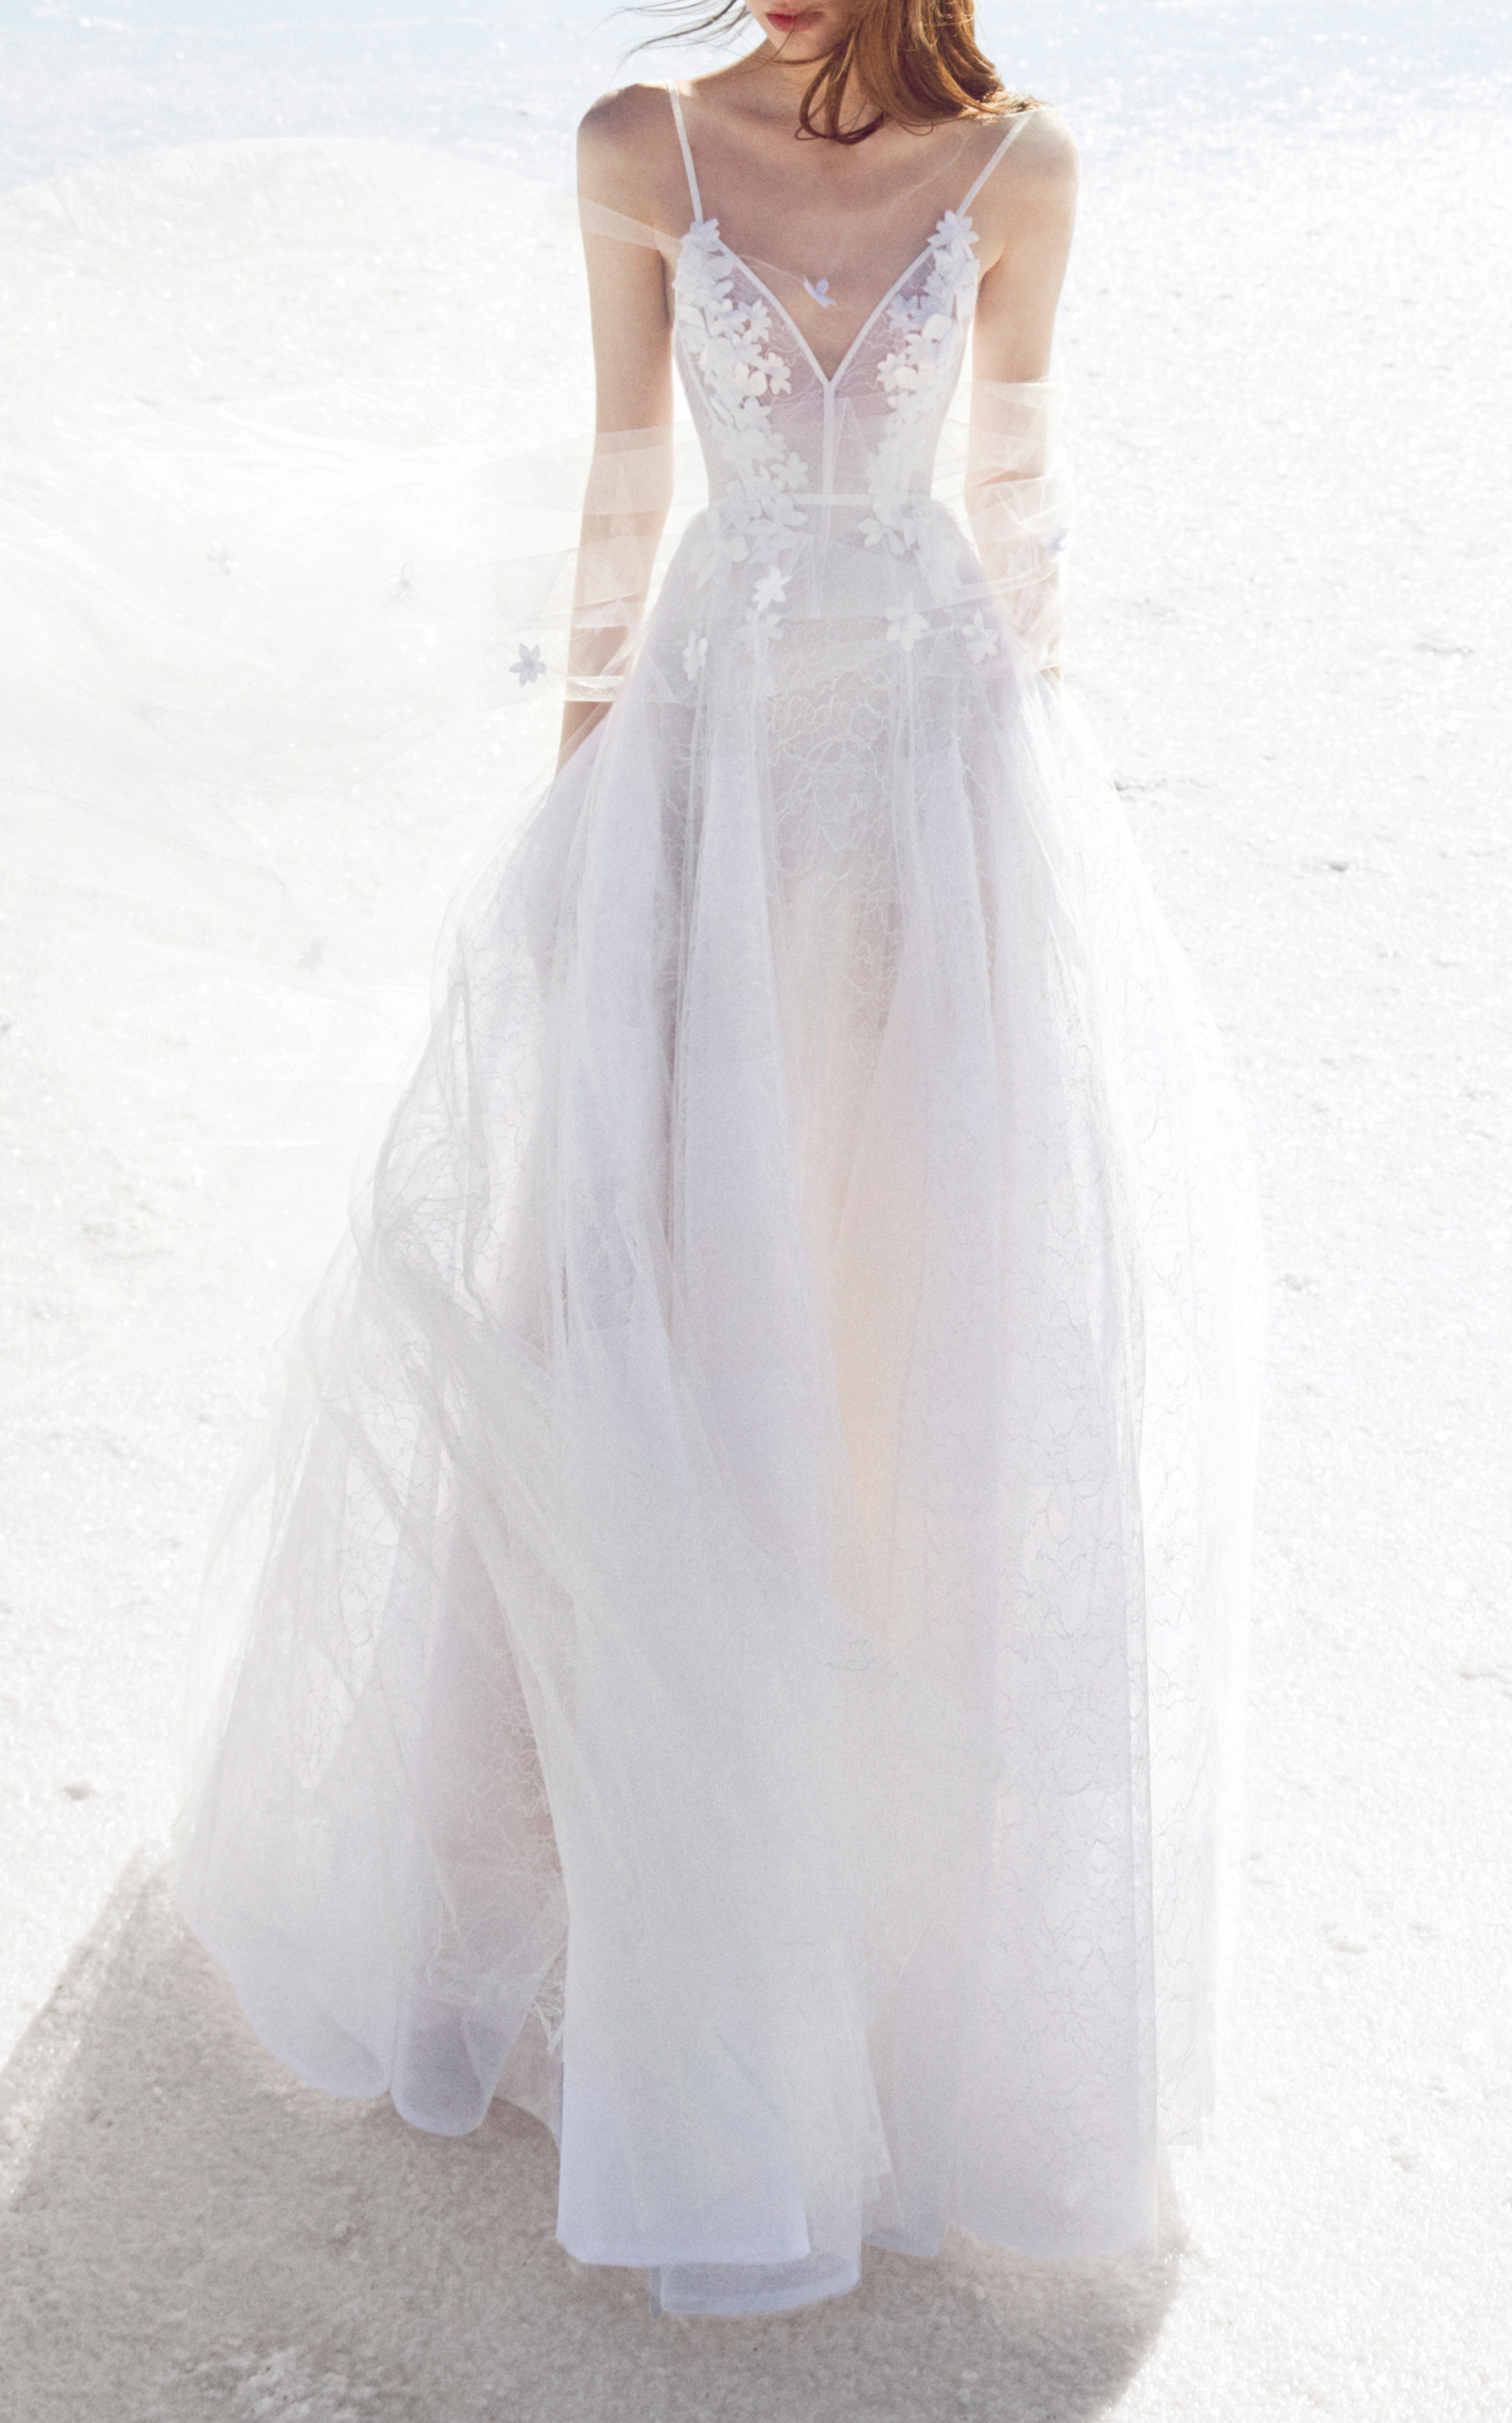 ALEX PERRY BRIDE Anna Lace Floral Embellished Gown in White